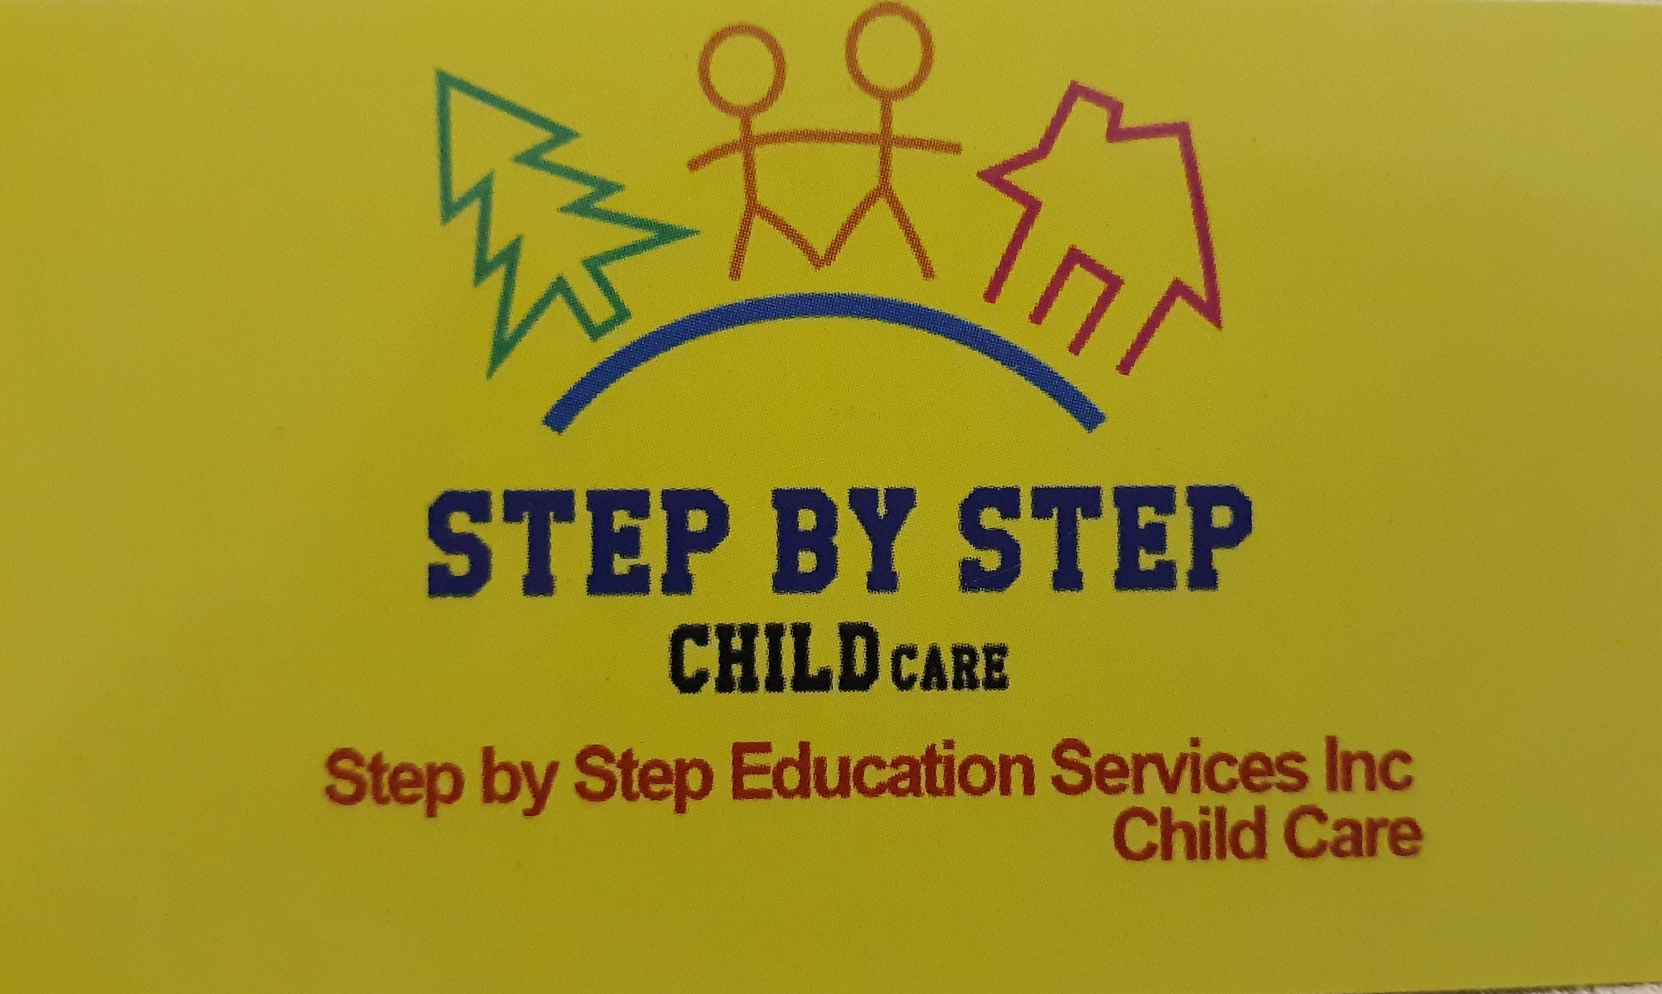 Step by Step Educational Services Inc